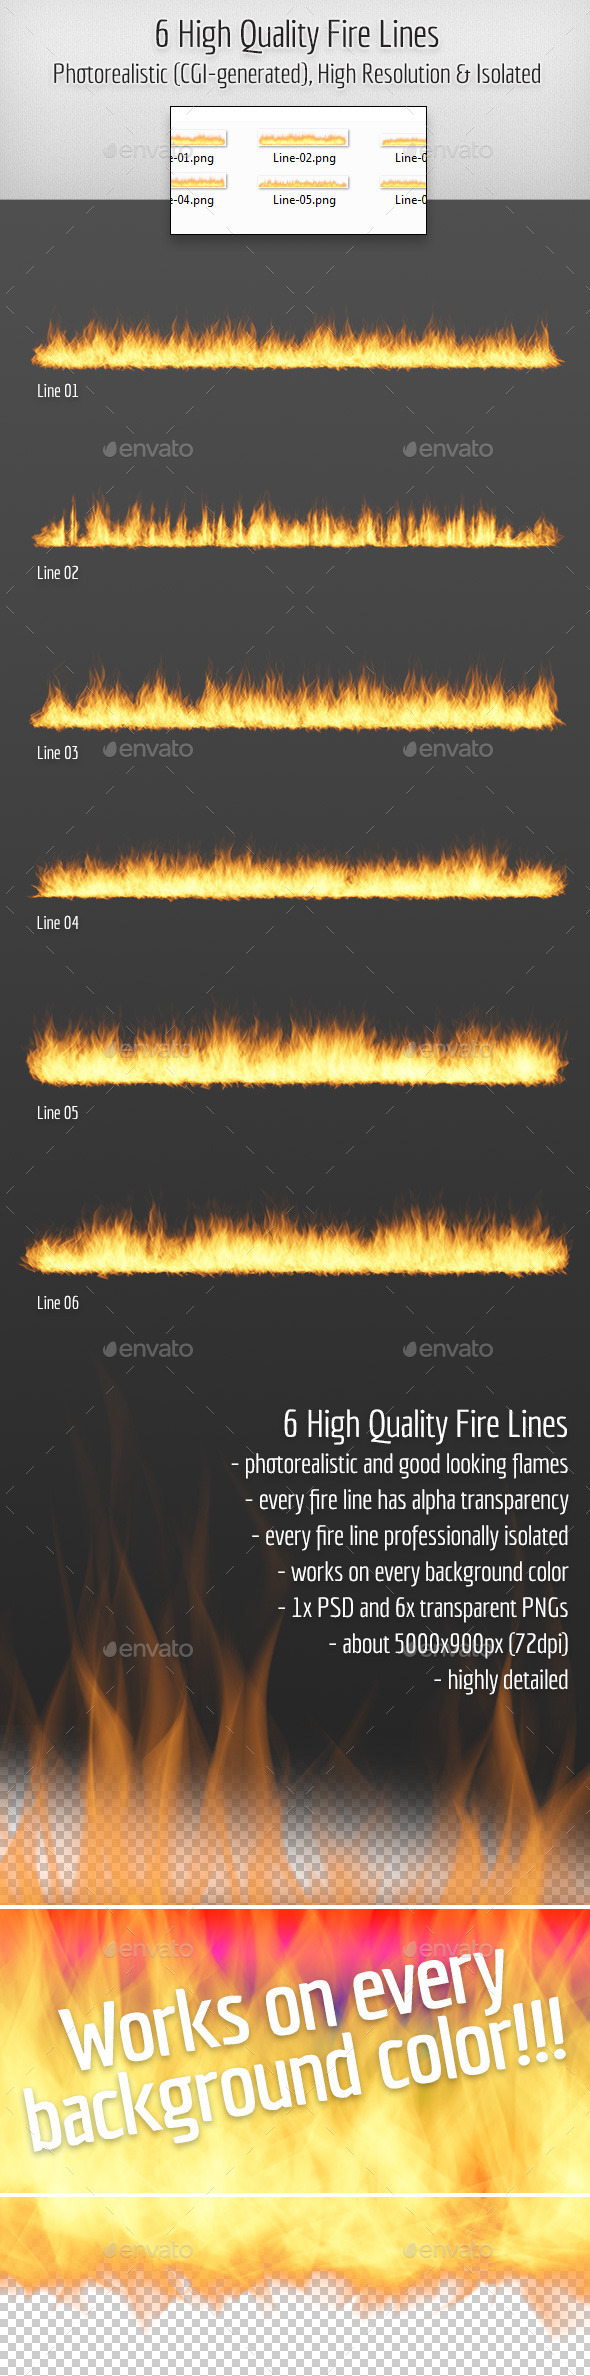 GraphicRiver 6 High Quality Hi-Res & Isolated CGI Fire Lines 10960709